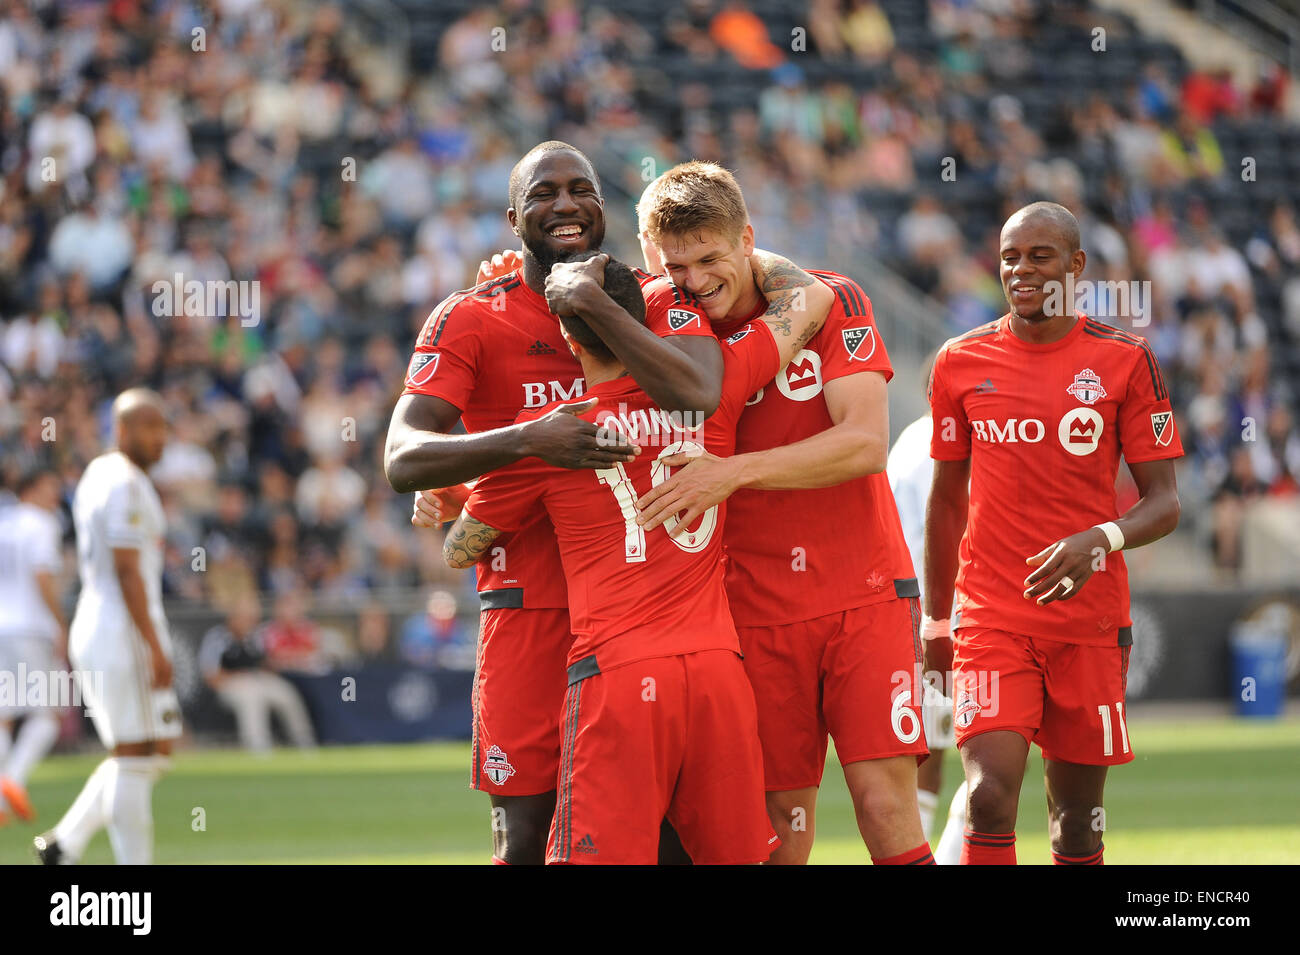 Chester, Pennsylvania, USA. 2nd May, 2015. Toronto players celebrate after scoring a goal against the Philadelphia Stock Photo